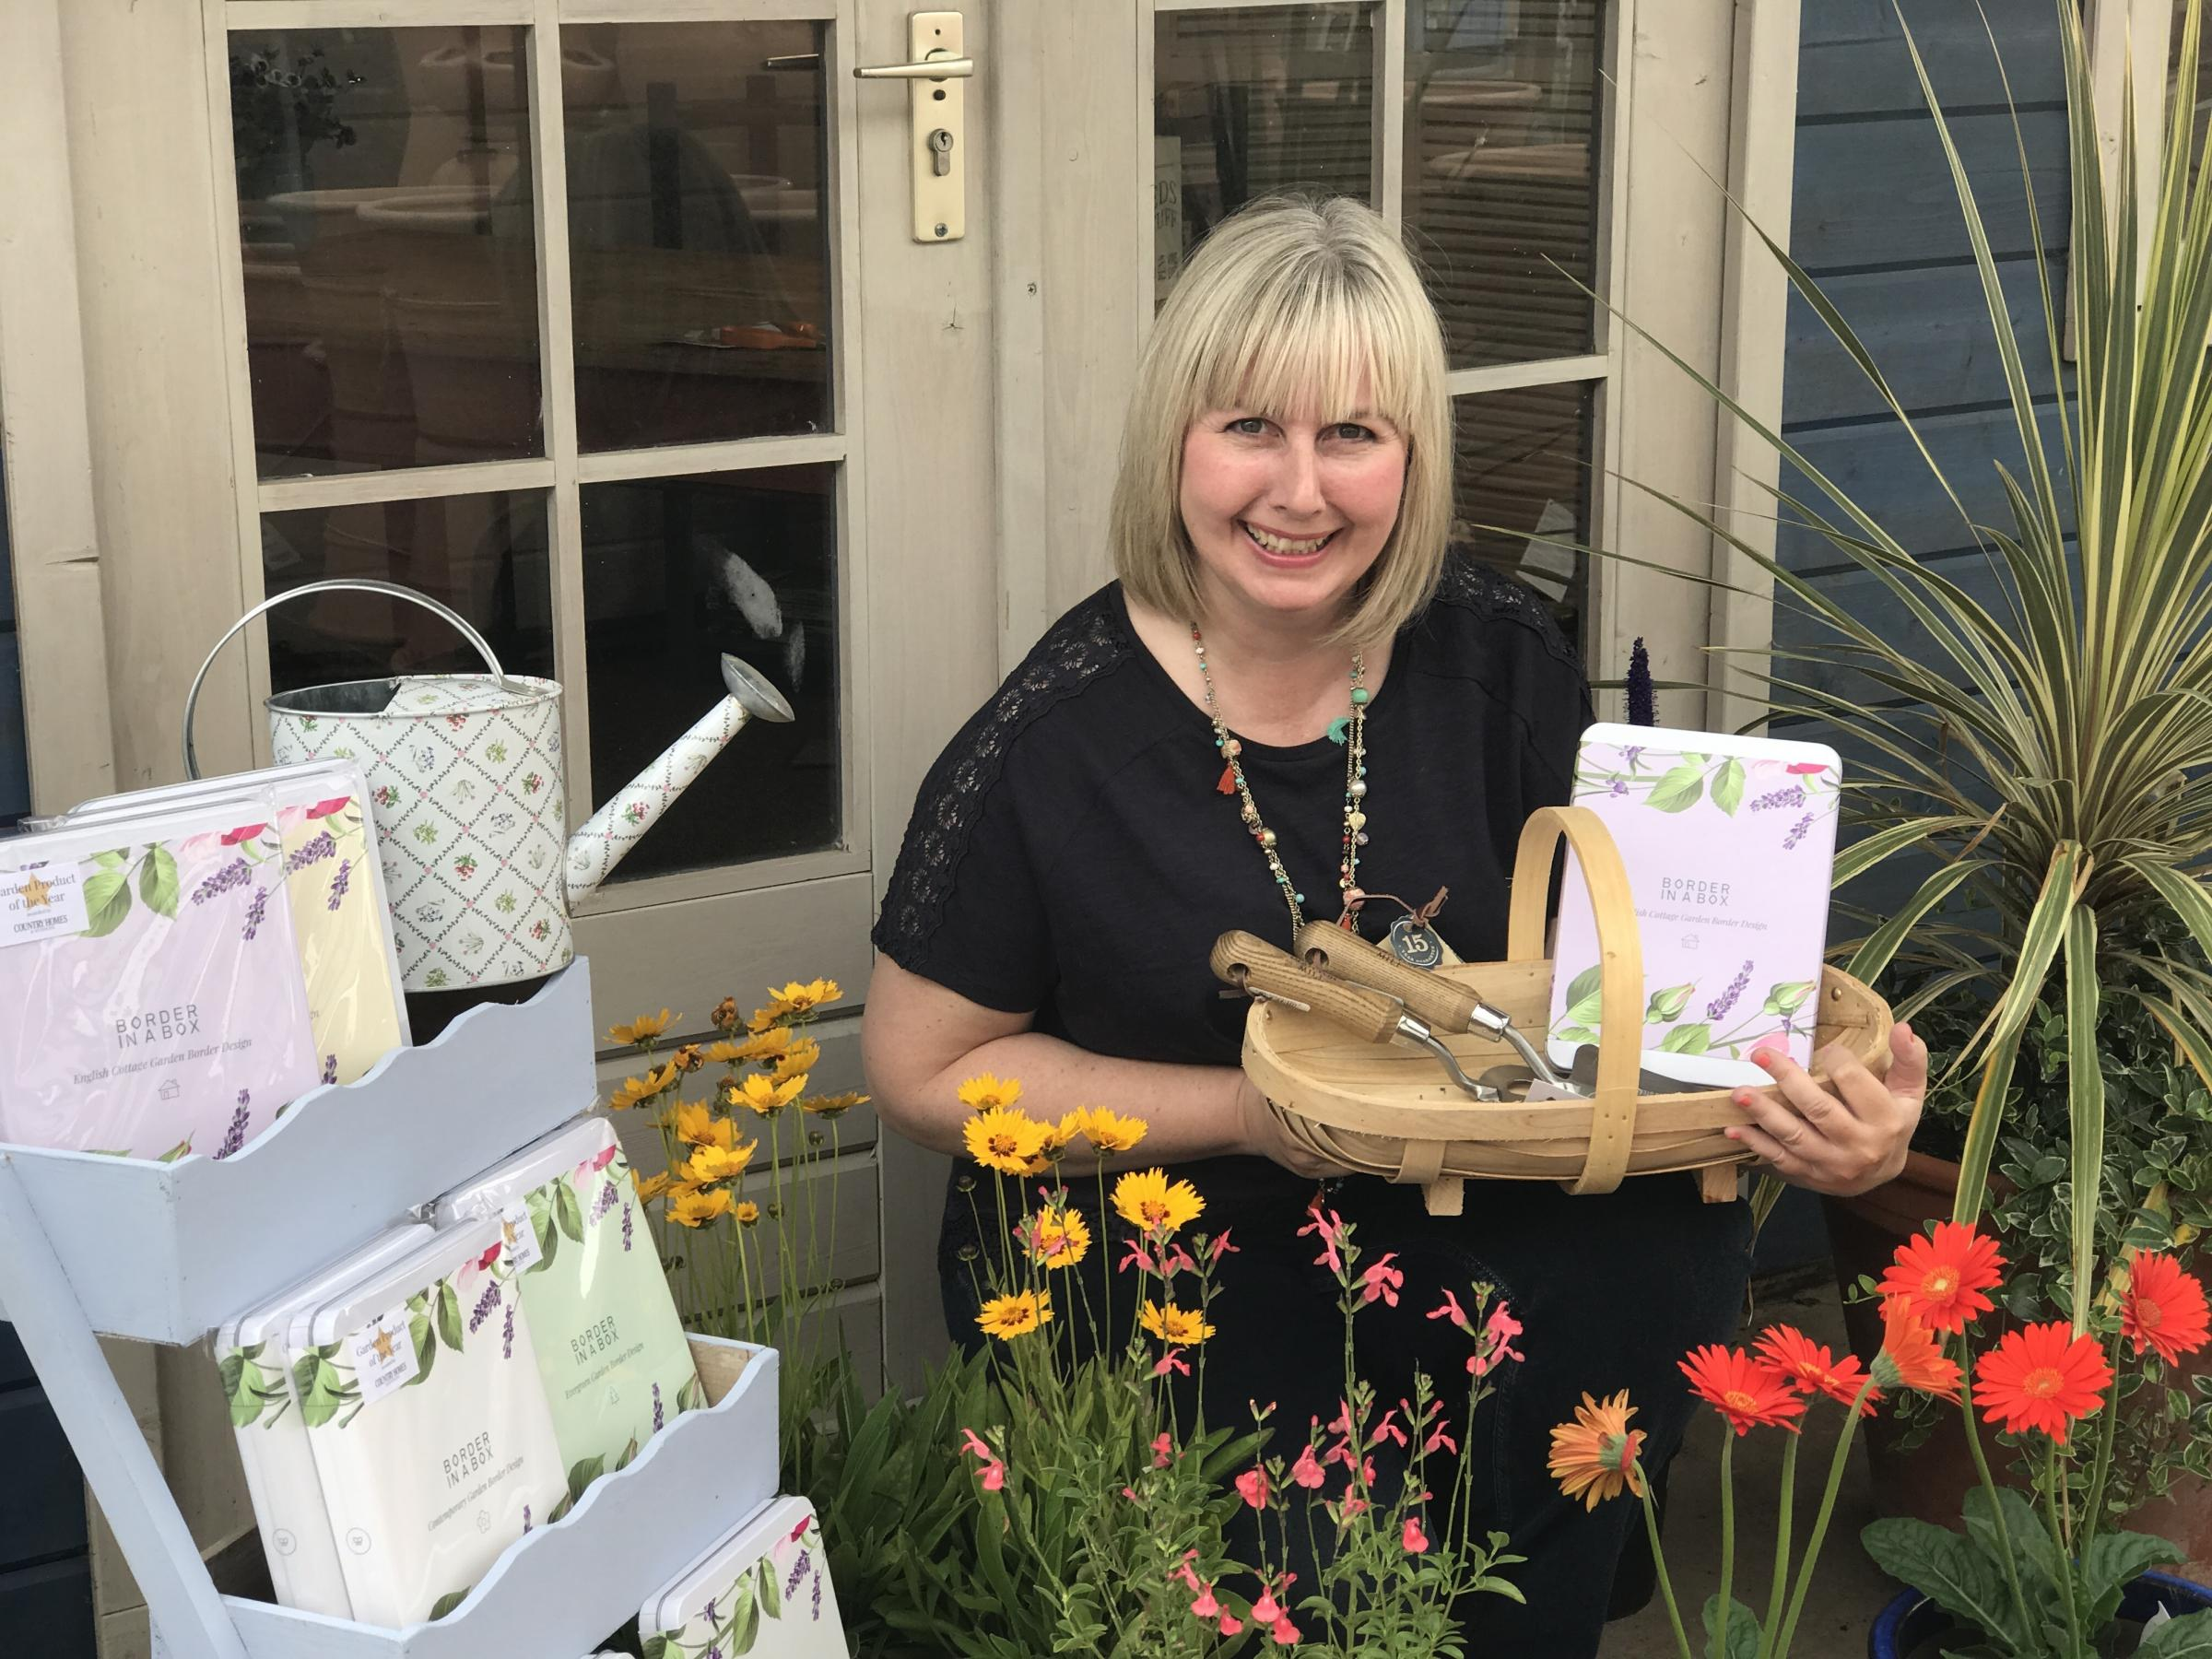 NOMINATION: Nikki Hollier of Border in a Box, which has been nominated for a NatWest Great British Entrepreneur Award.